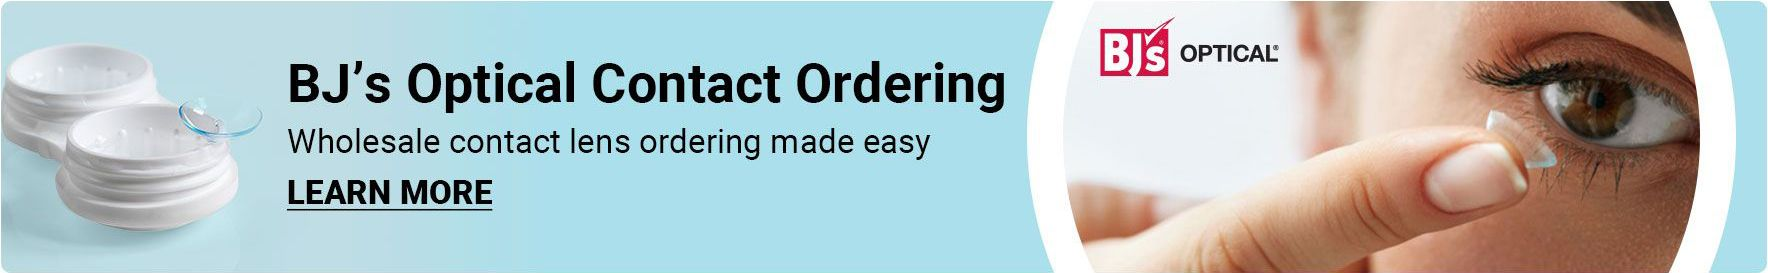 BJ's Optical contact ordering. Wholesale contact lens ordering made easy. Click to learn more.